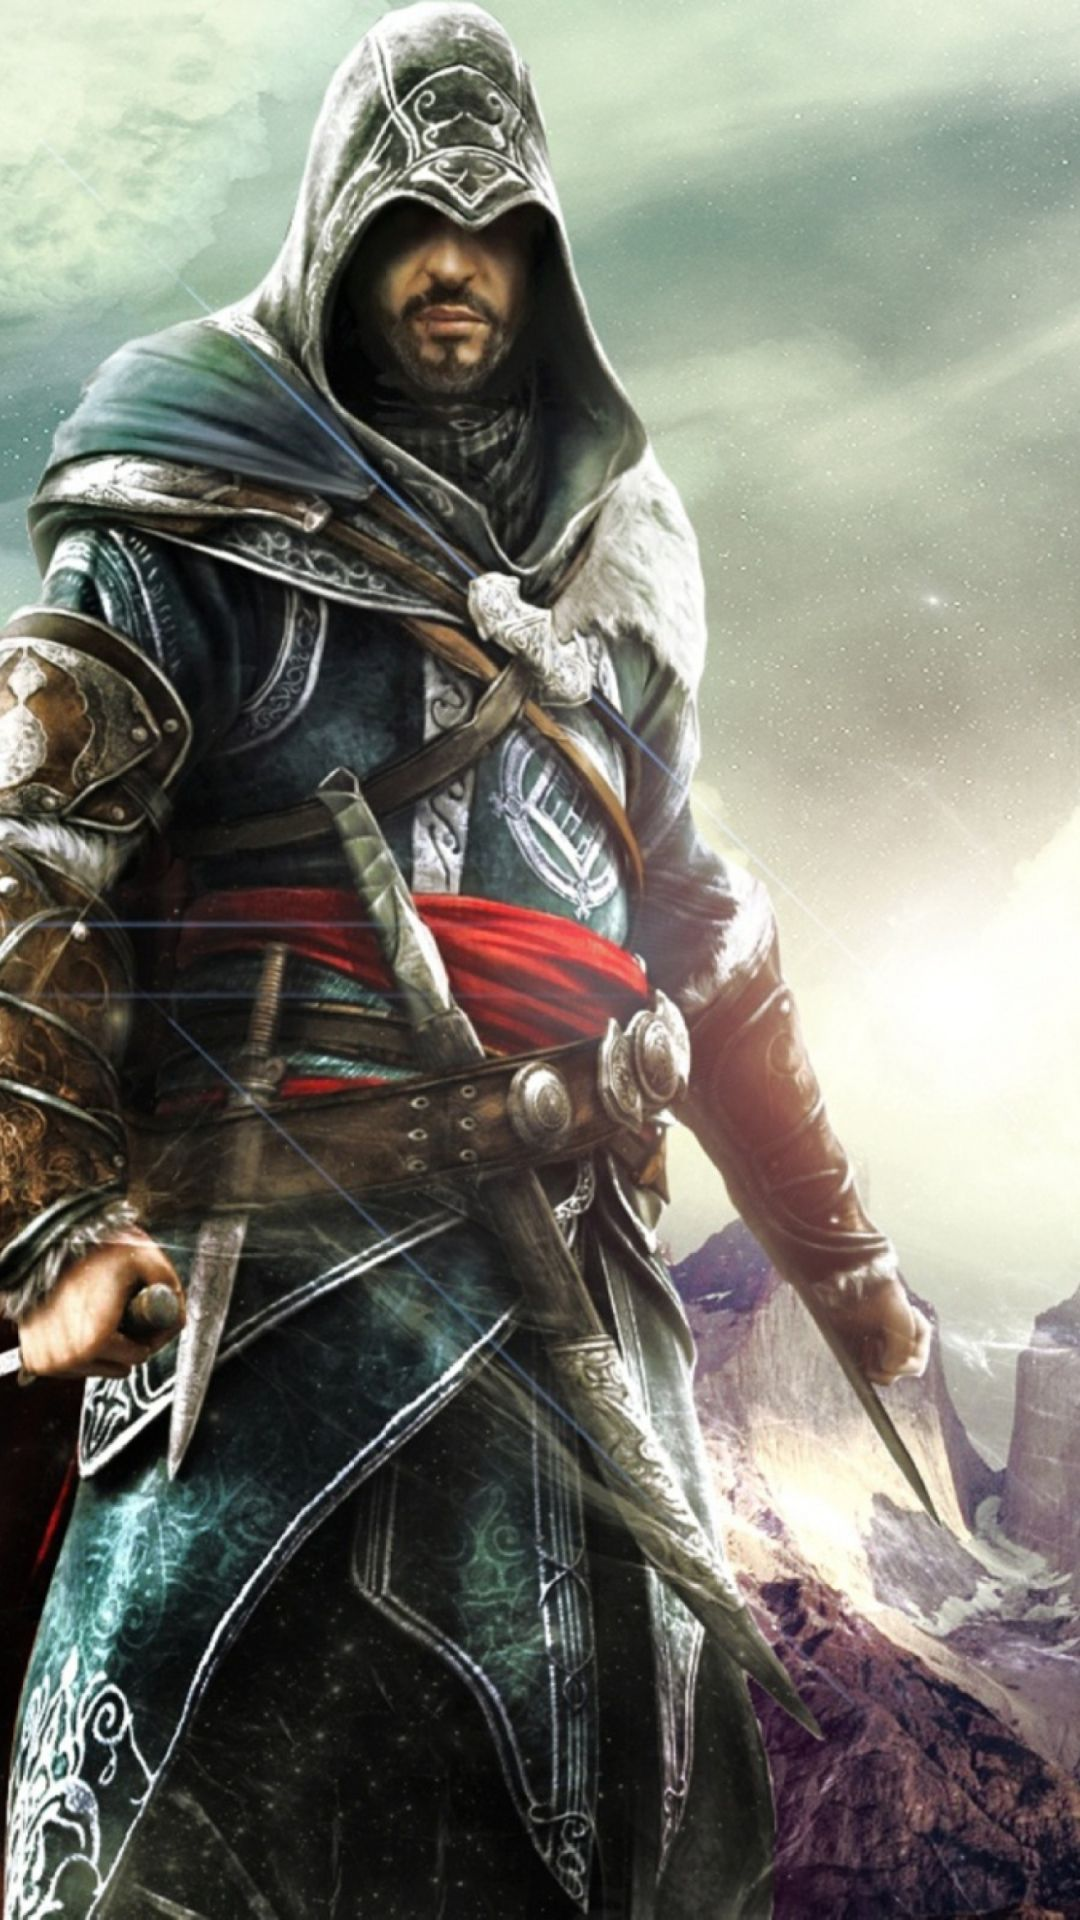 Assassins Creed Wallpaper 1080p Hupages Download Iphone Wallpapers Assassin S Creed Assassin S Creed Hd Assassin S Creed Wallpaper